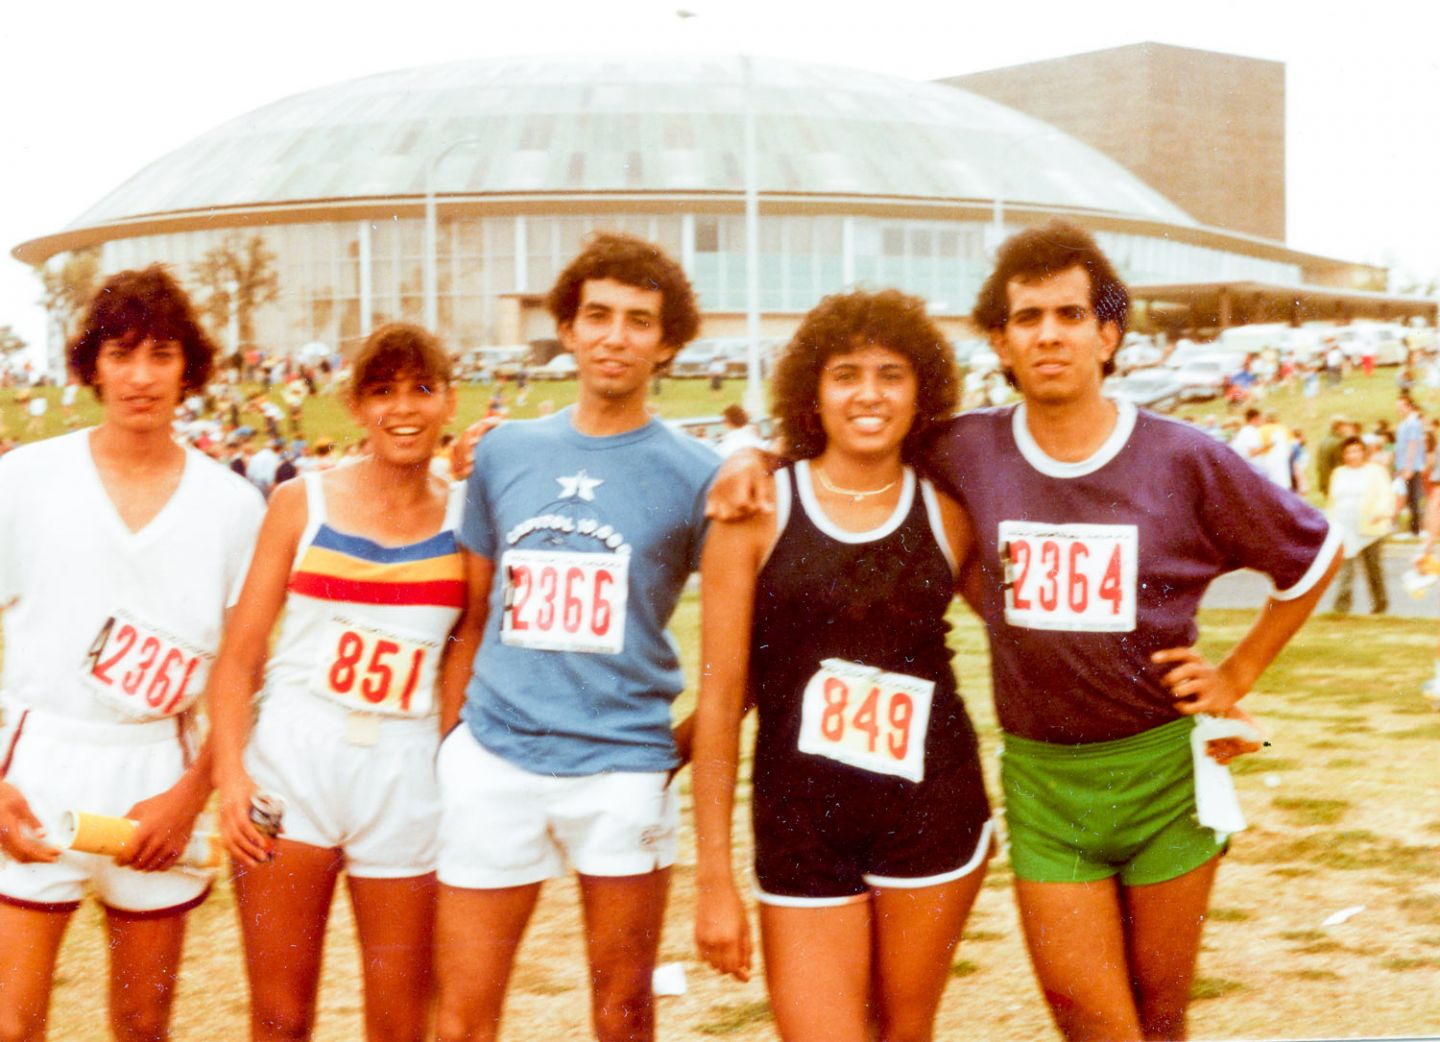 Vintage Photo of Runners